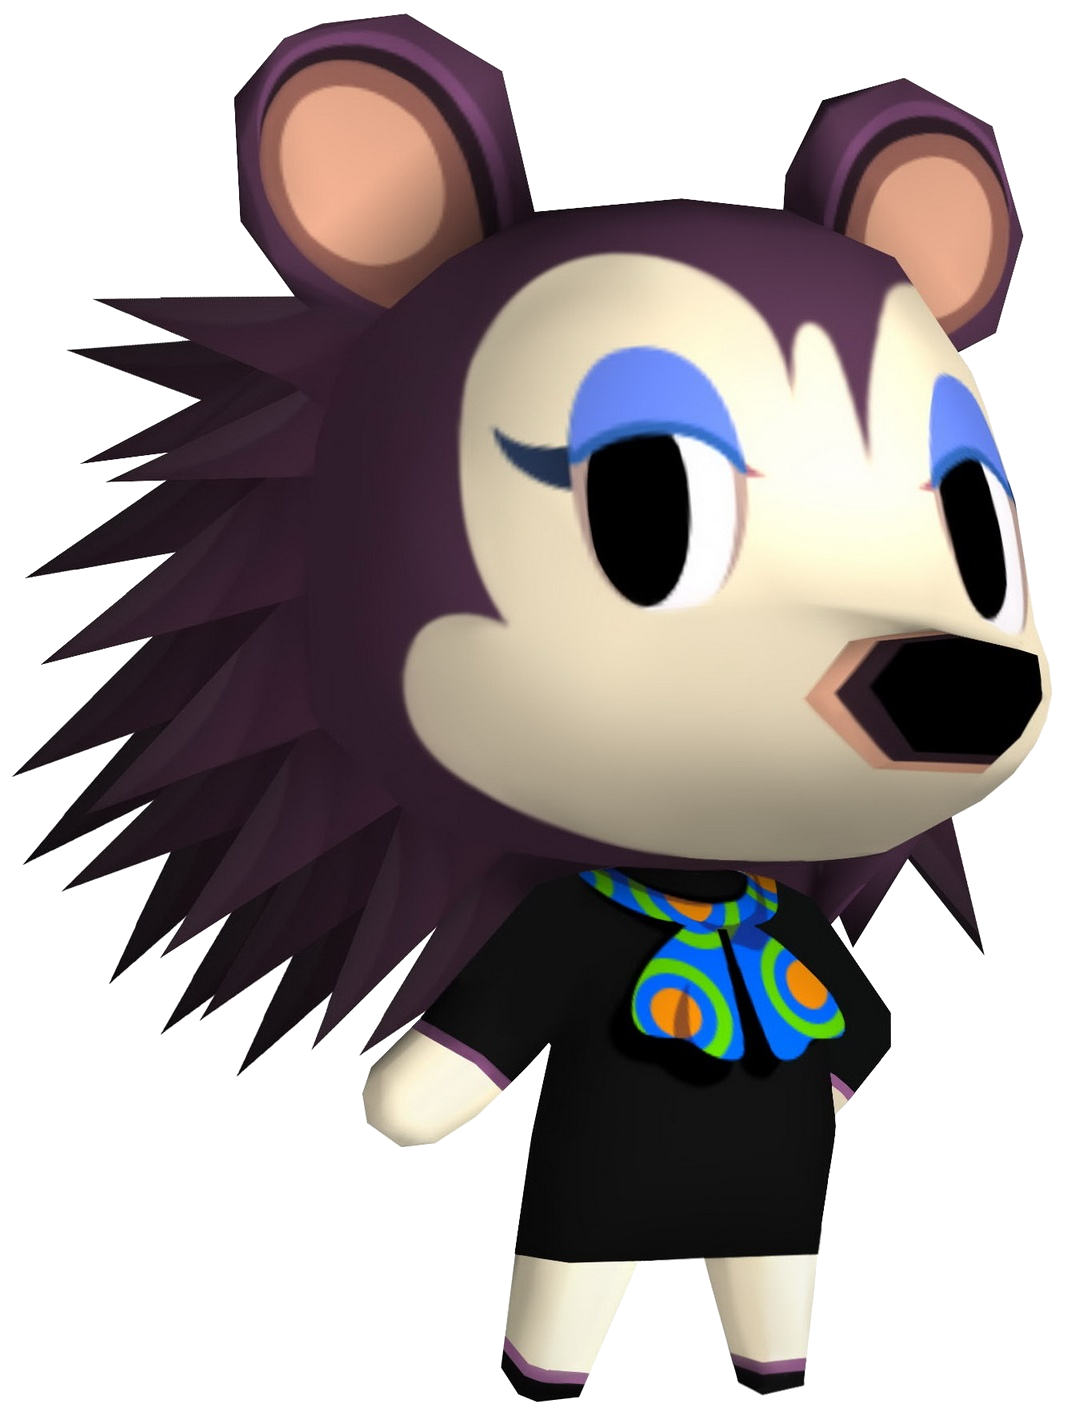 Animal crossing leaf png. Image labelle new wiki